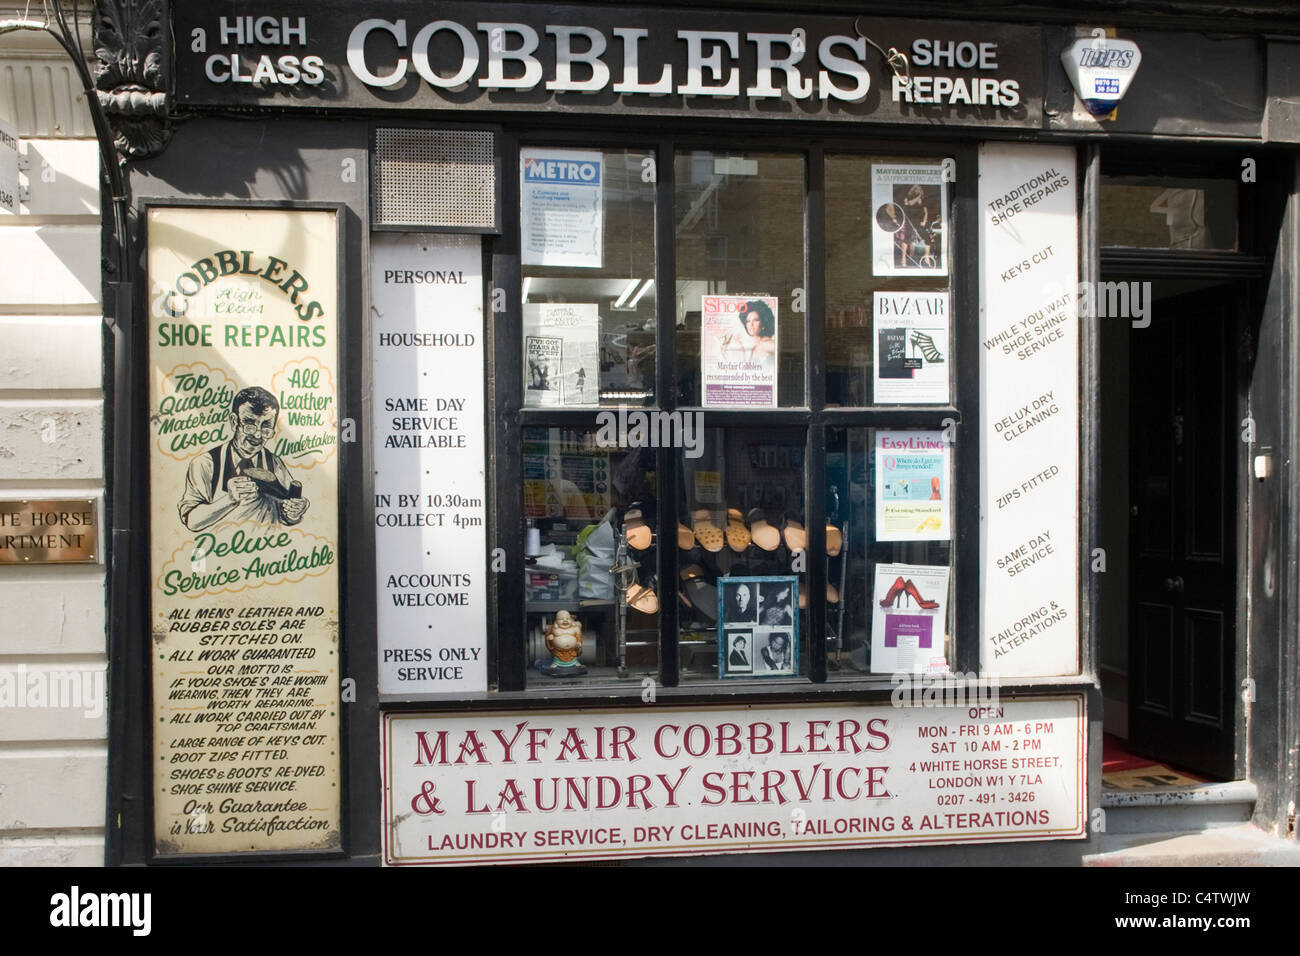 London White Horse Street old fashioned Mayfair Cobblers & Laundry Service traditional high class deluxe shoe - Stock Image